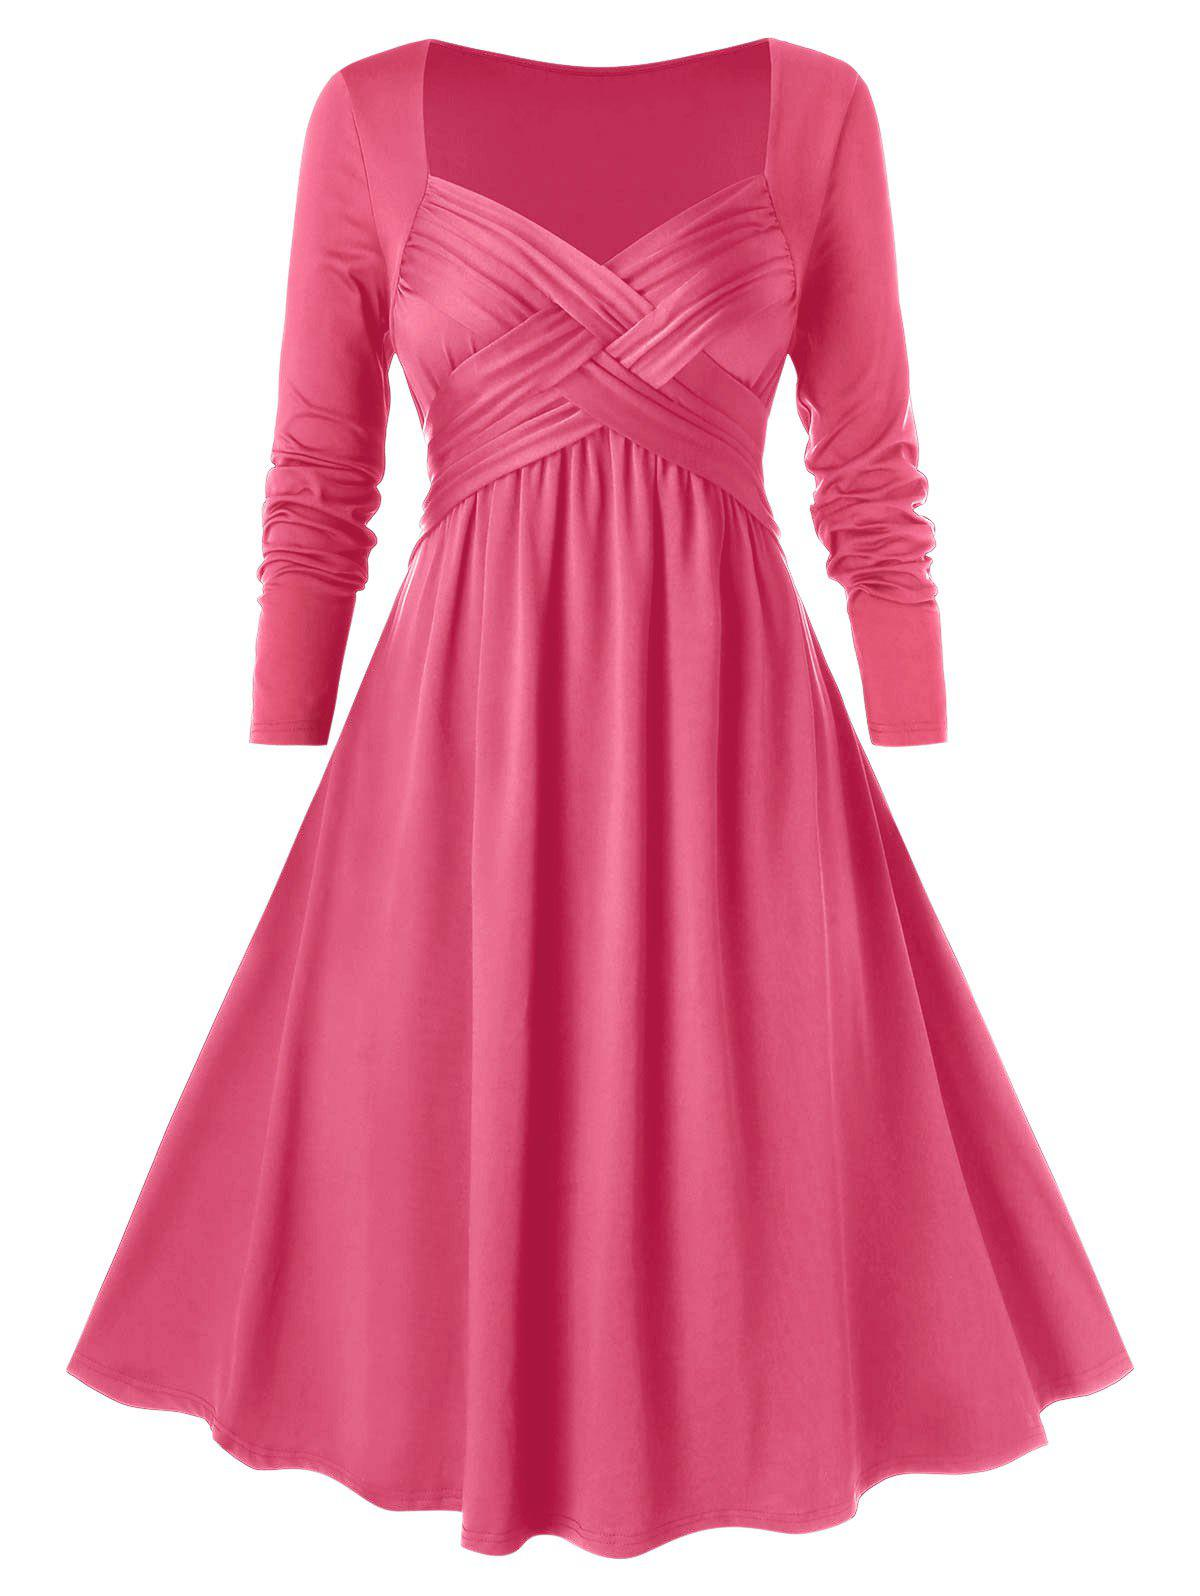 Plus Size Crossover Midi Flare Dress - HOT PINK 3X